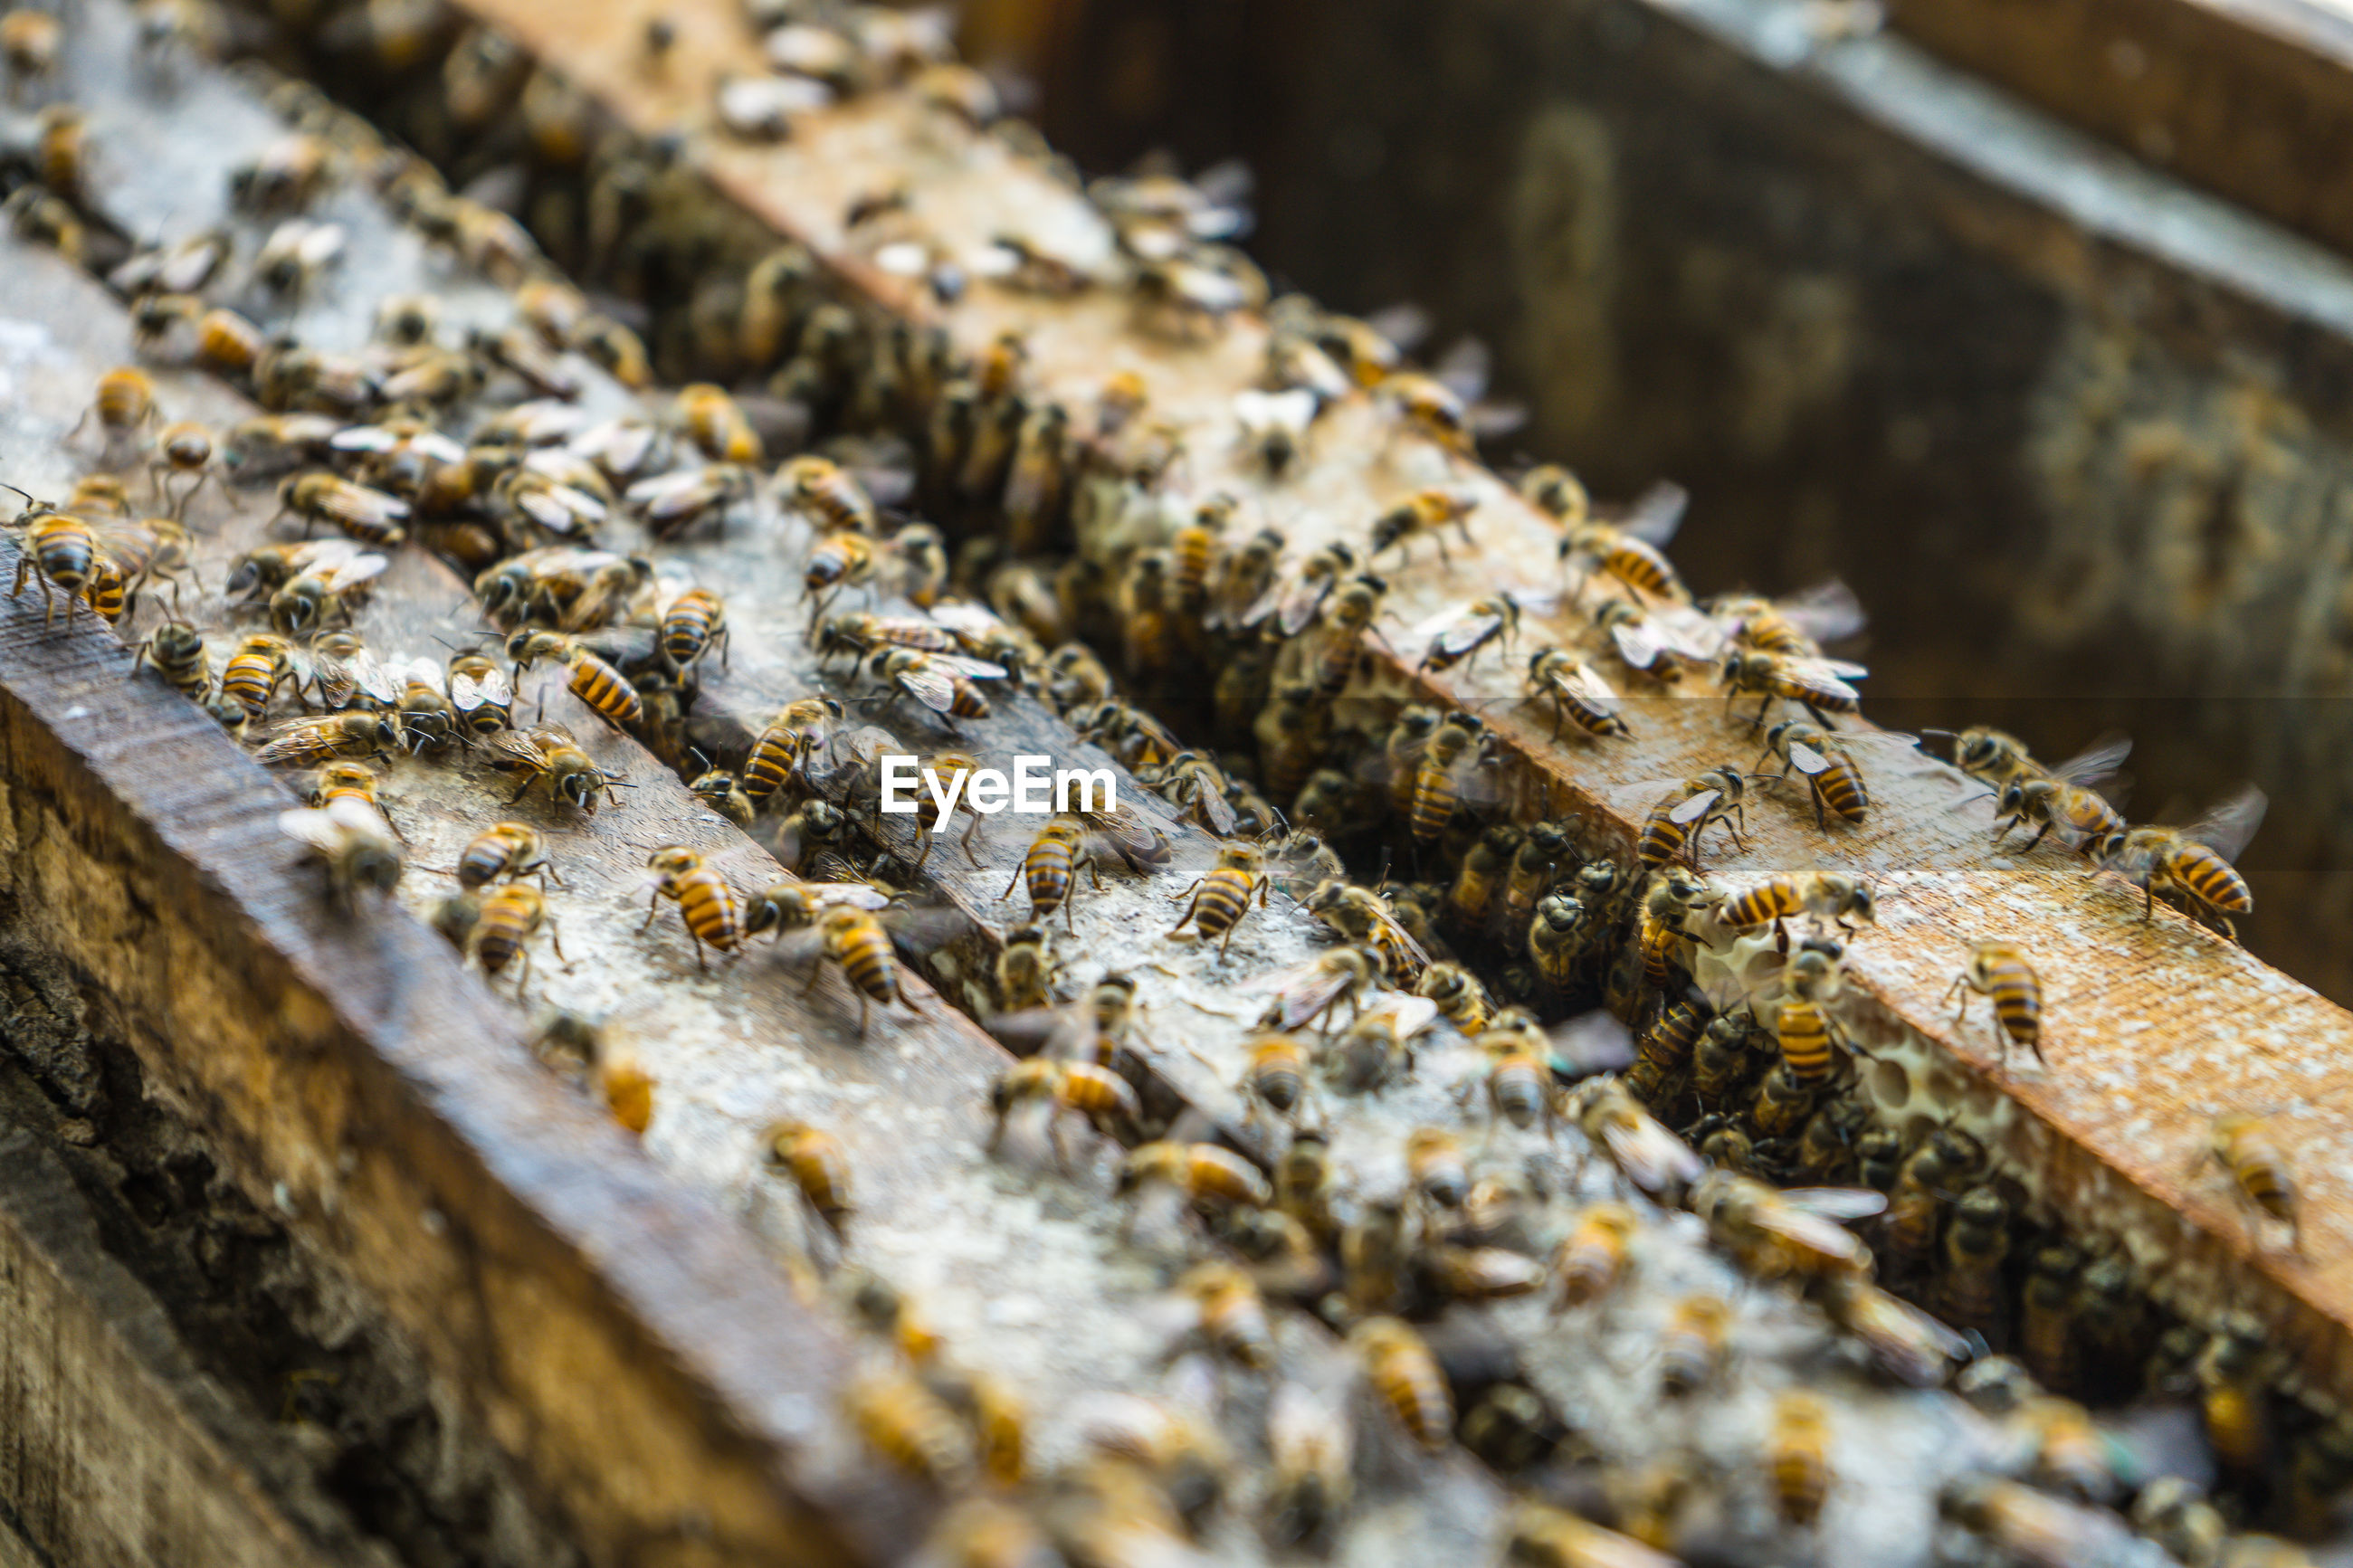 High angle view of bees in beehive